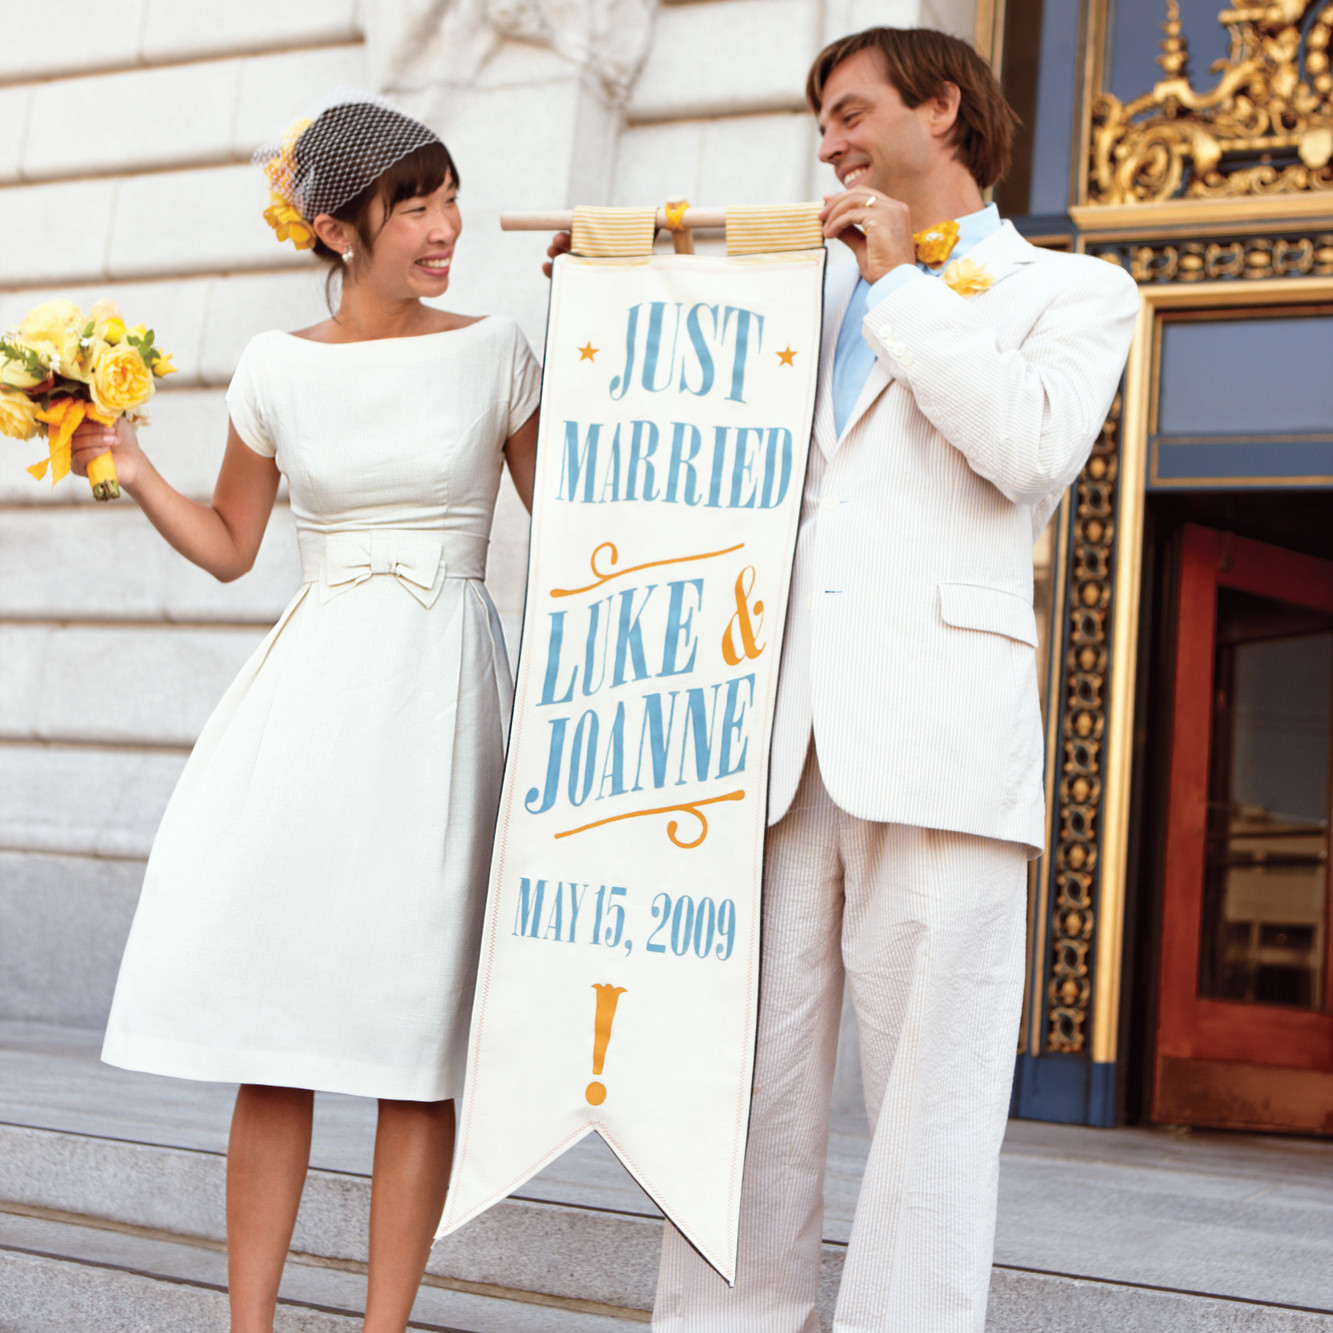 20 City Hall Wedding Dress Ideas For Making It Official In Style Martha Weddings